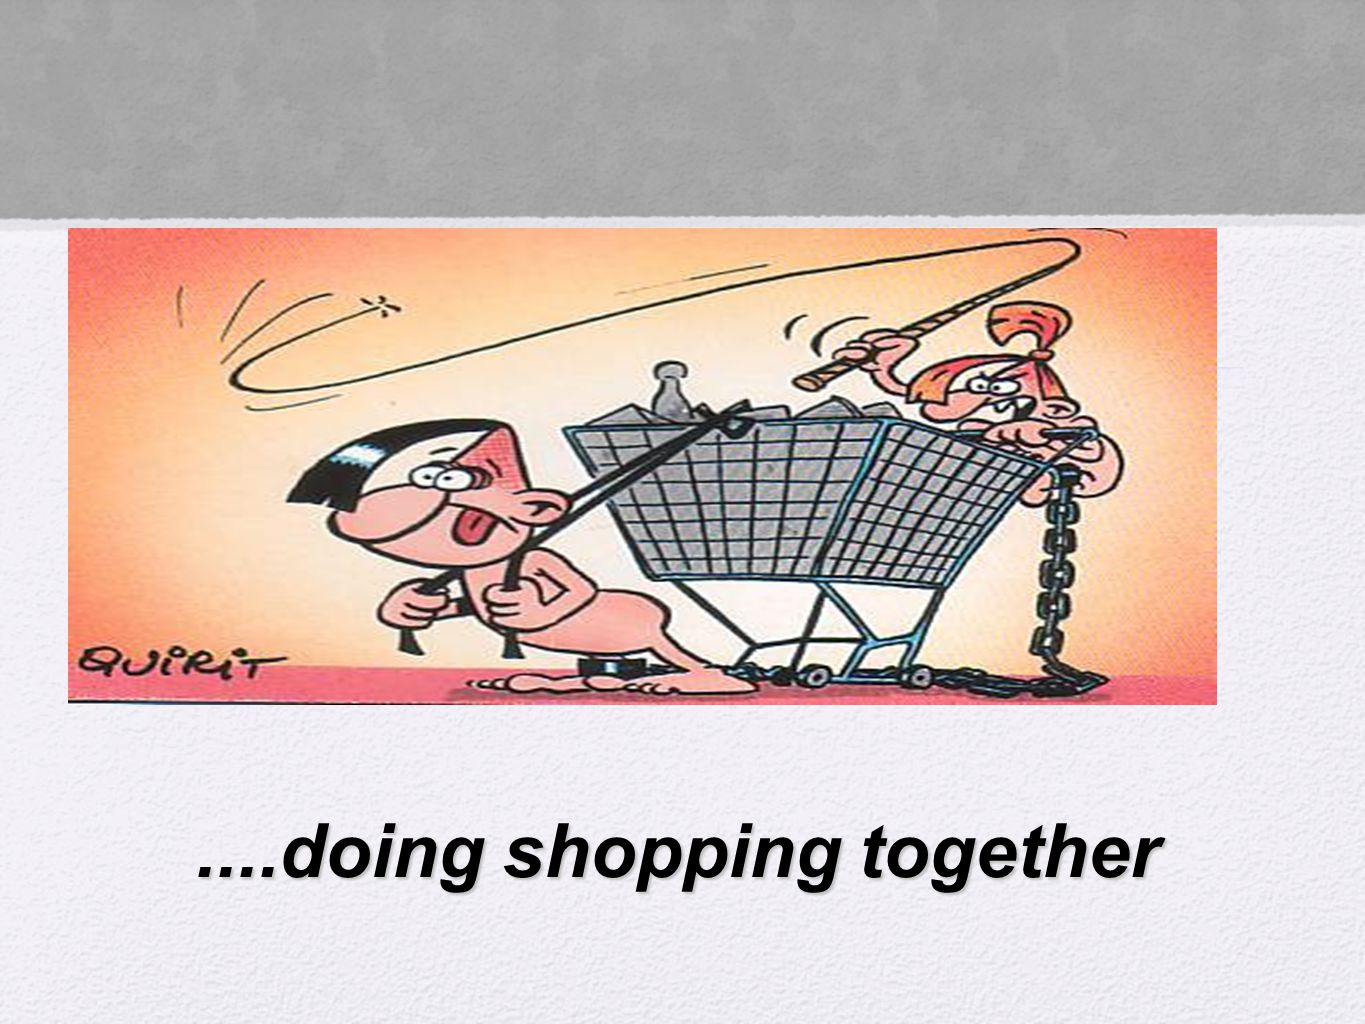 ....doing shopping together